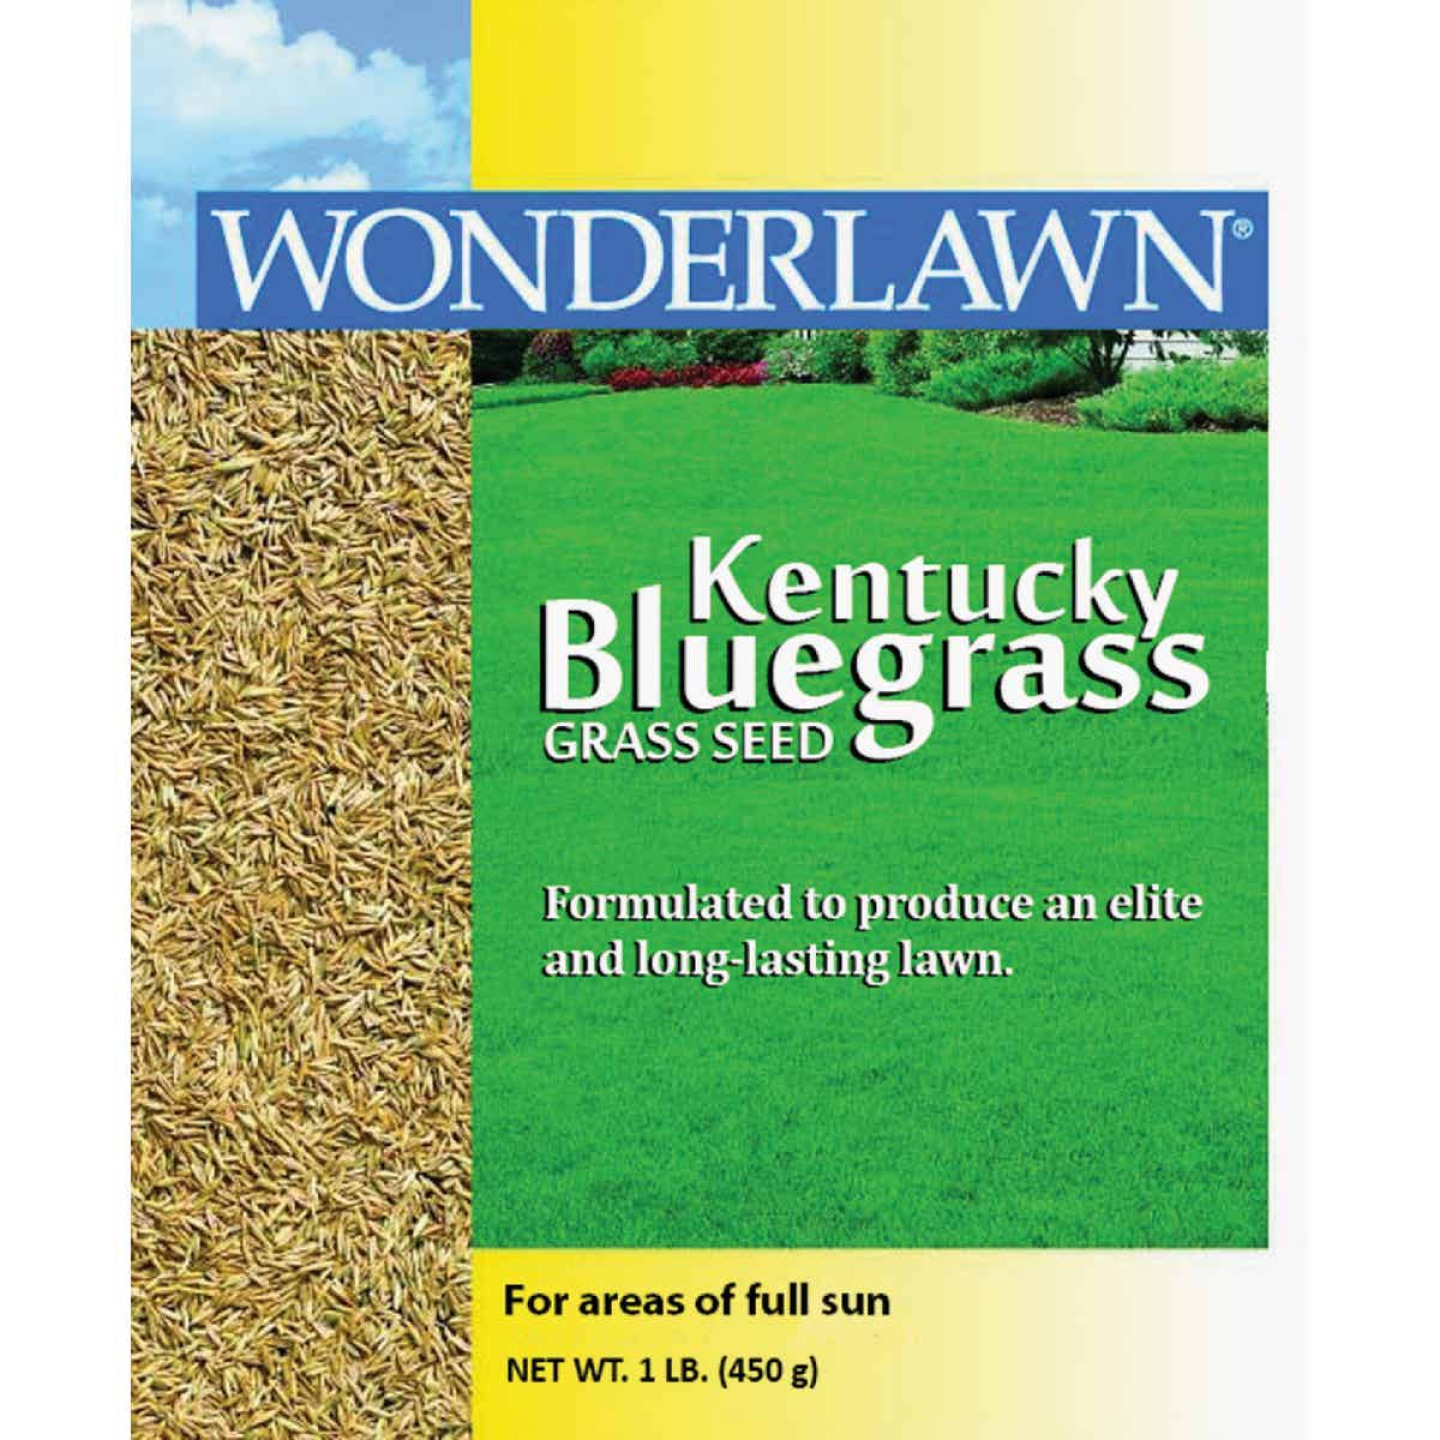 Wonderlawn 1 Lb. 500 Sq. Ft. Coverage Kentucky Bluegrass Grass Seed Image 1